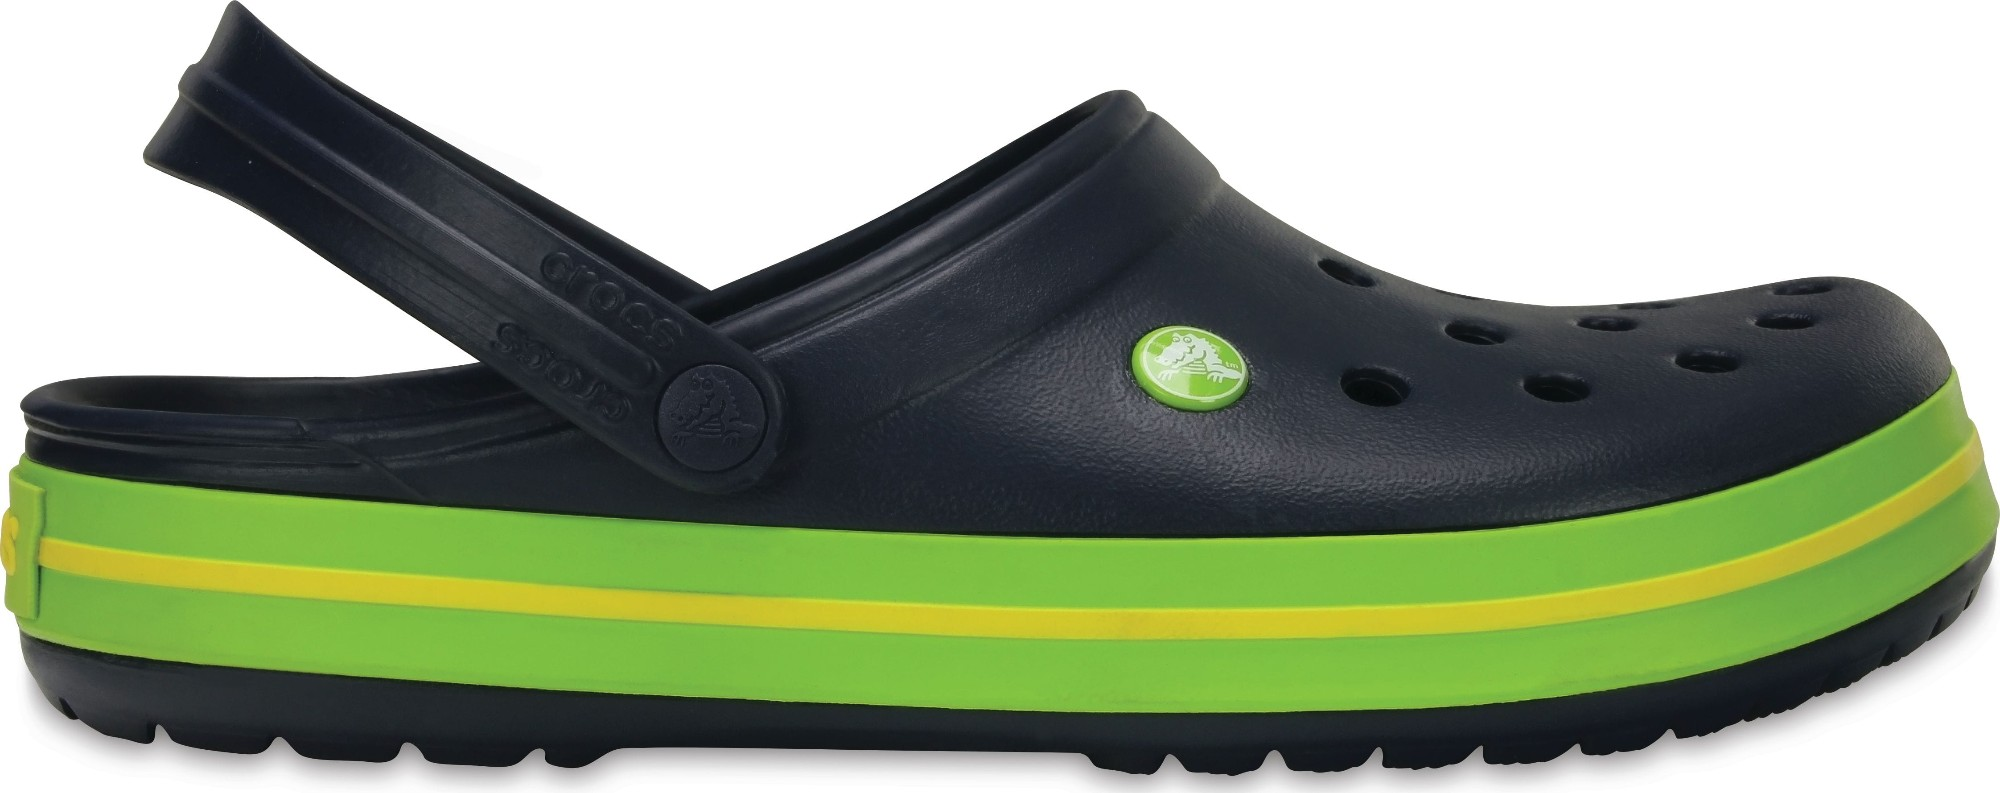 Crocs™ Crocband™ Navy/Volt Green/Lemon 45,5